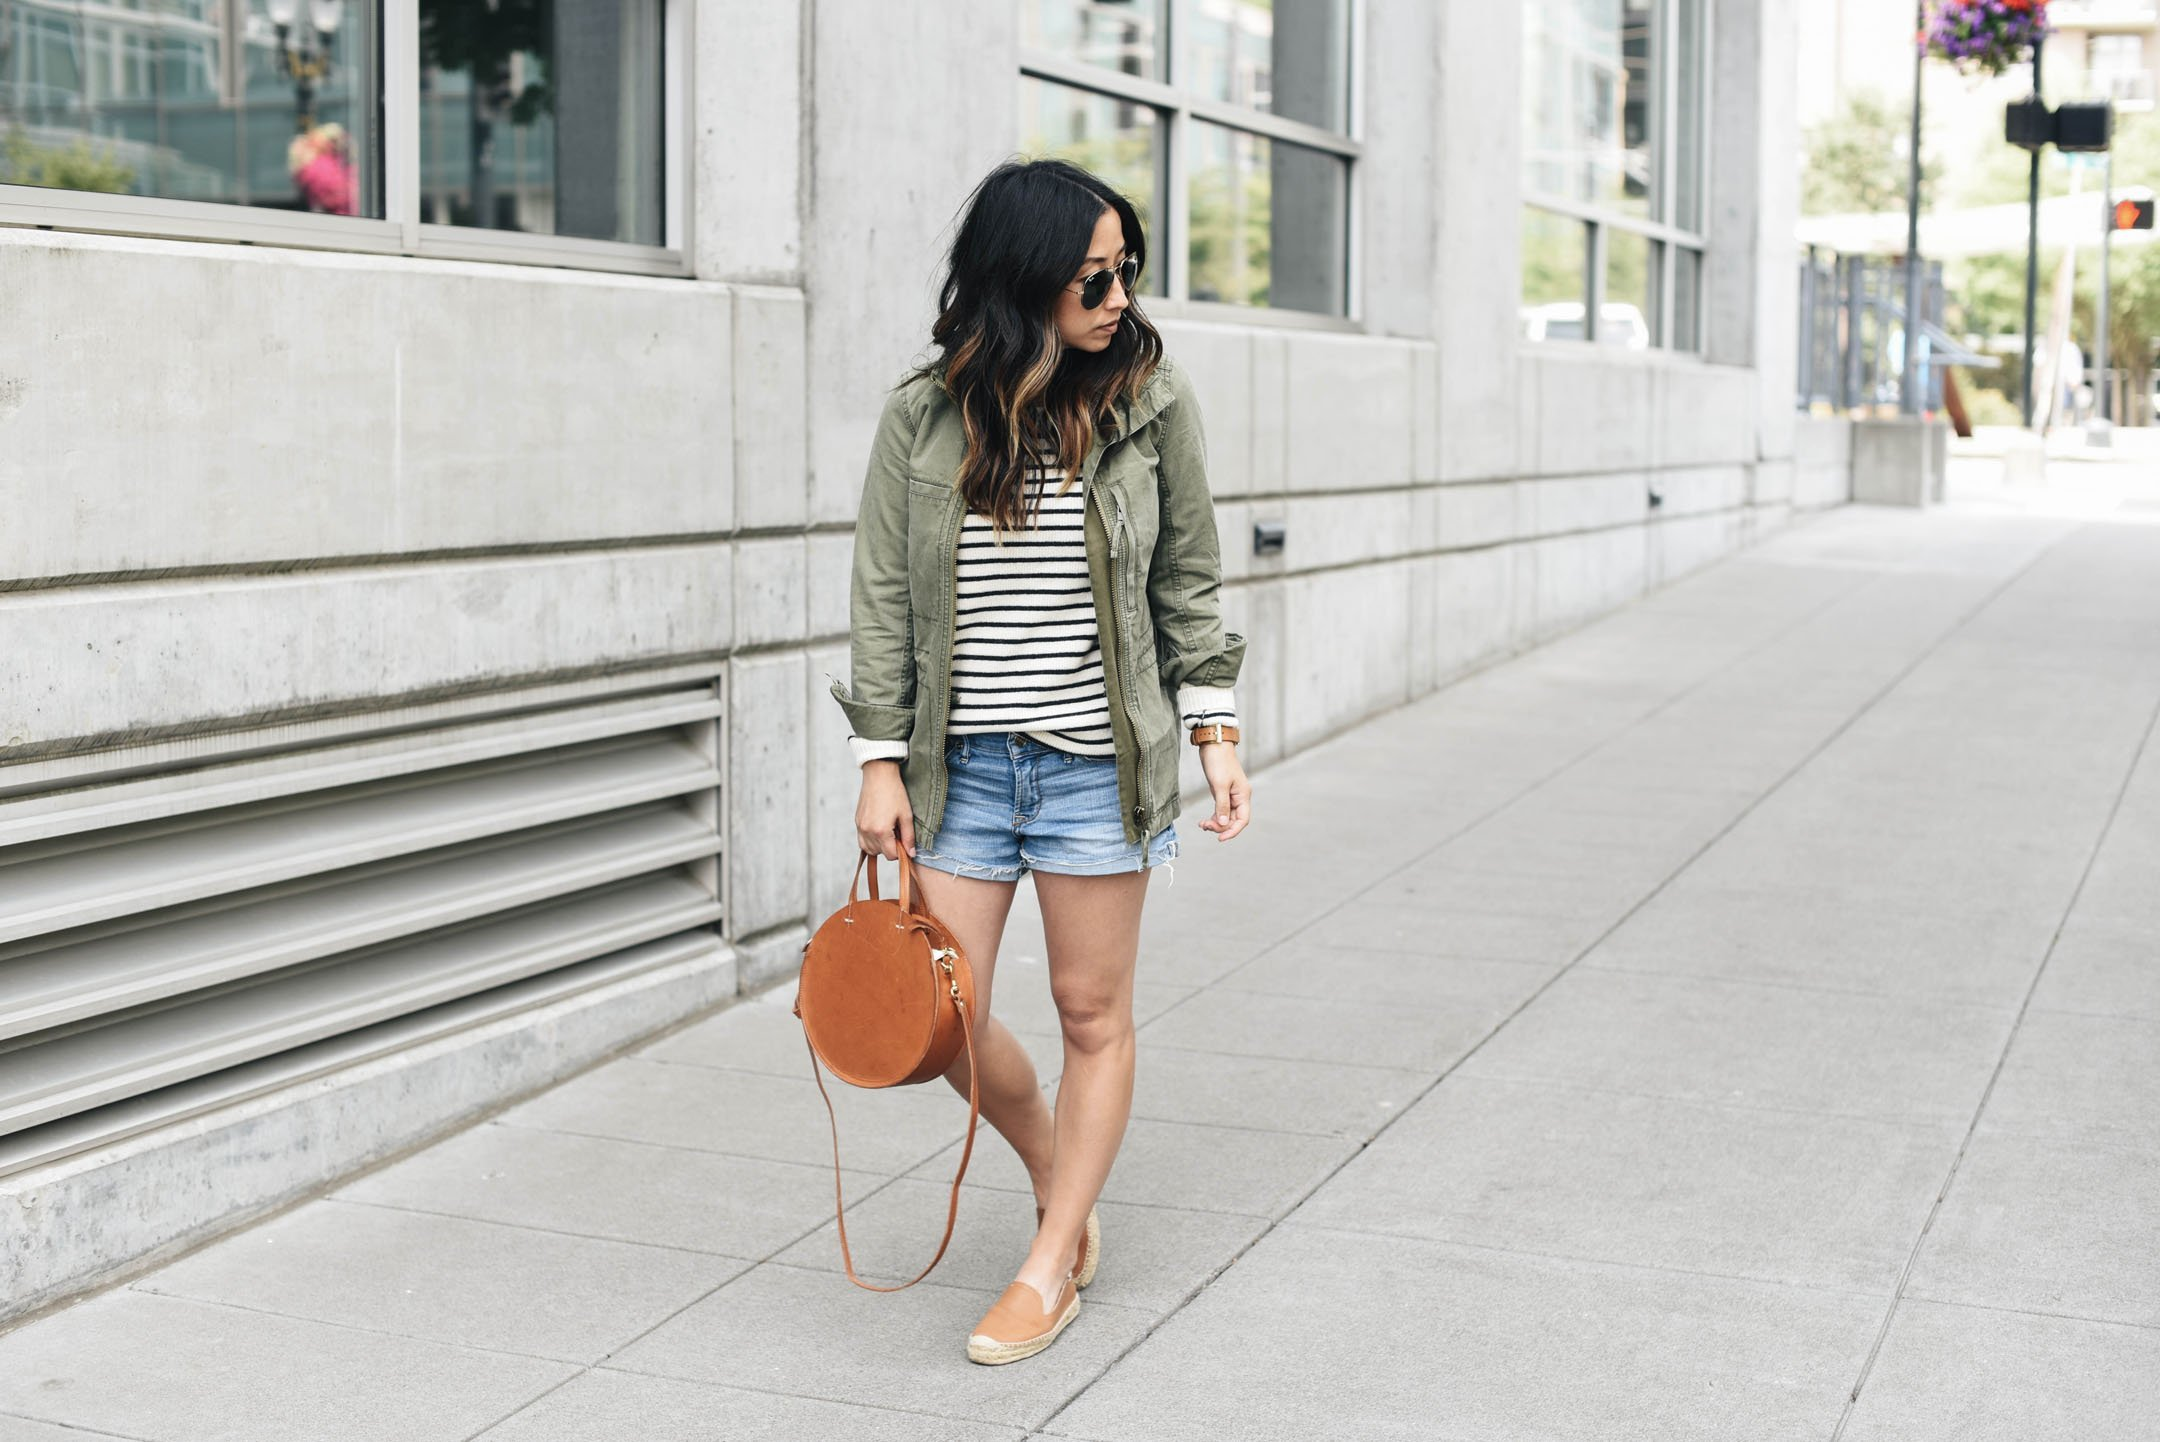 Madewell fleet jacket styled